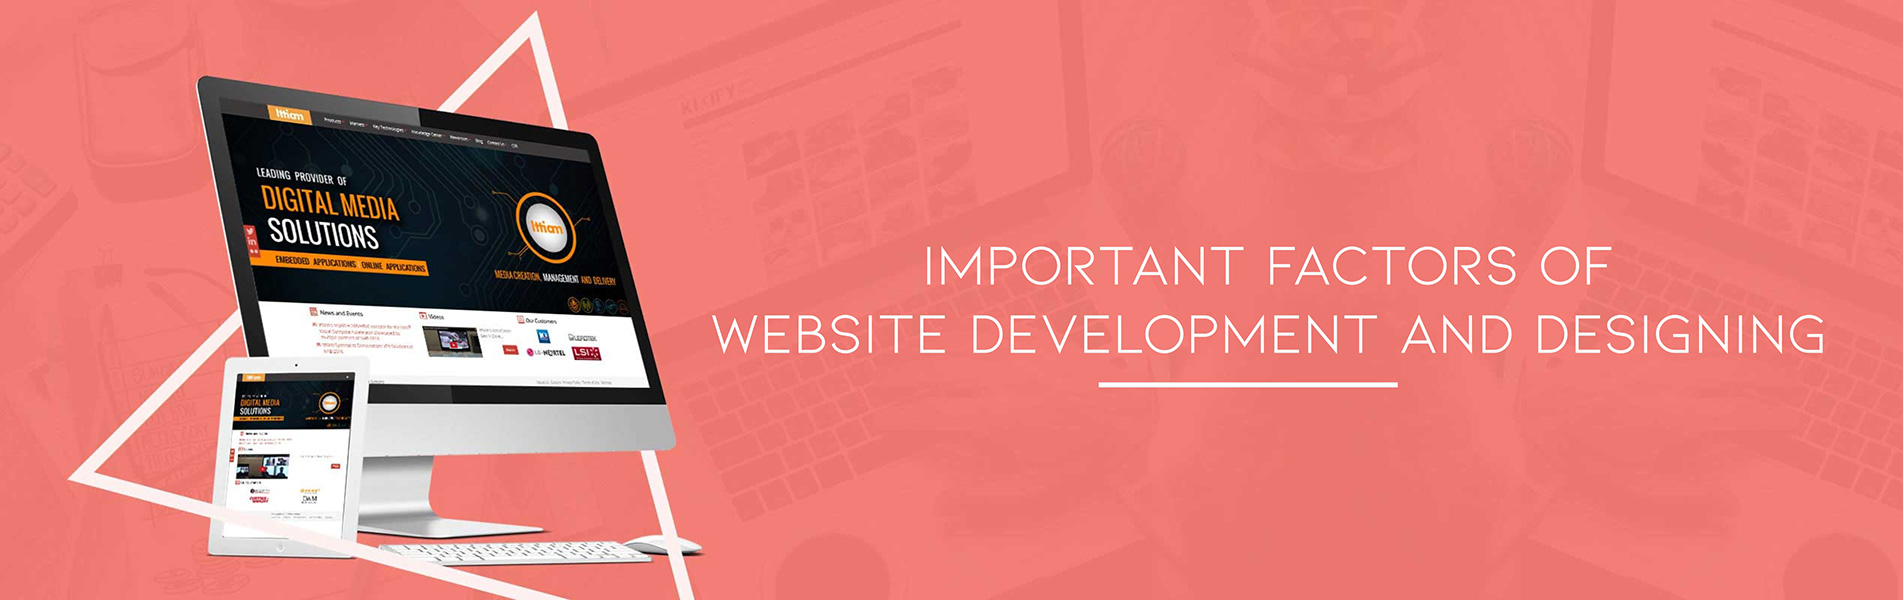 Important-factors-of-website-development-and-designing